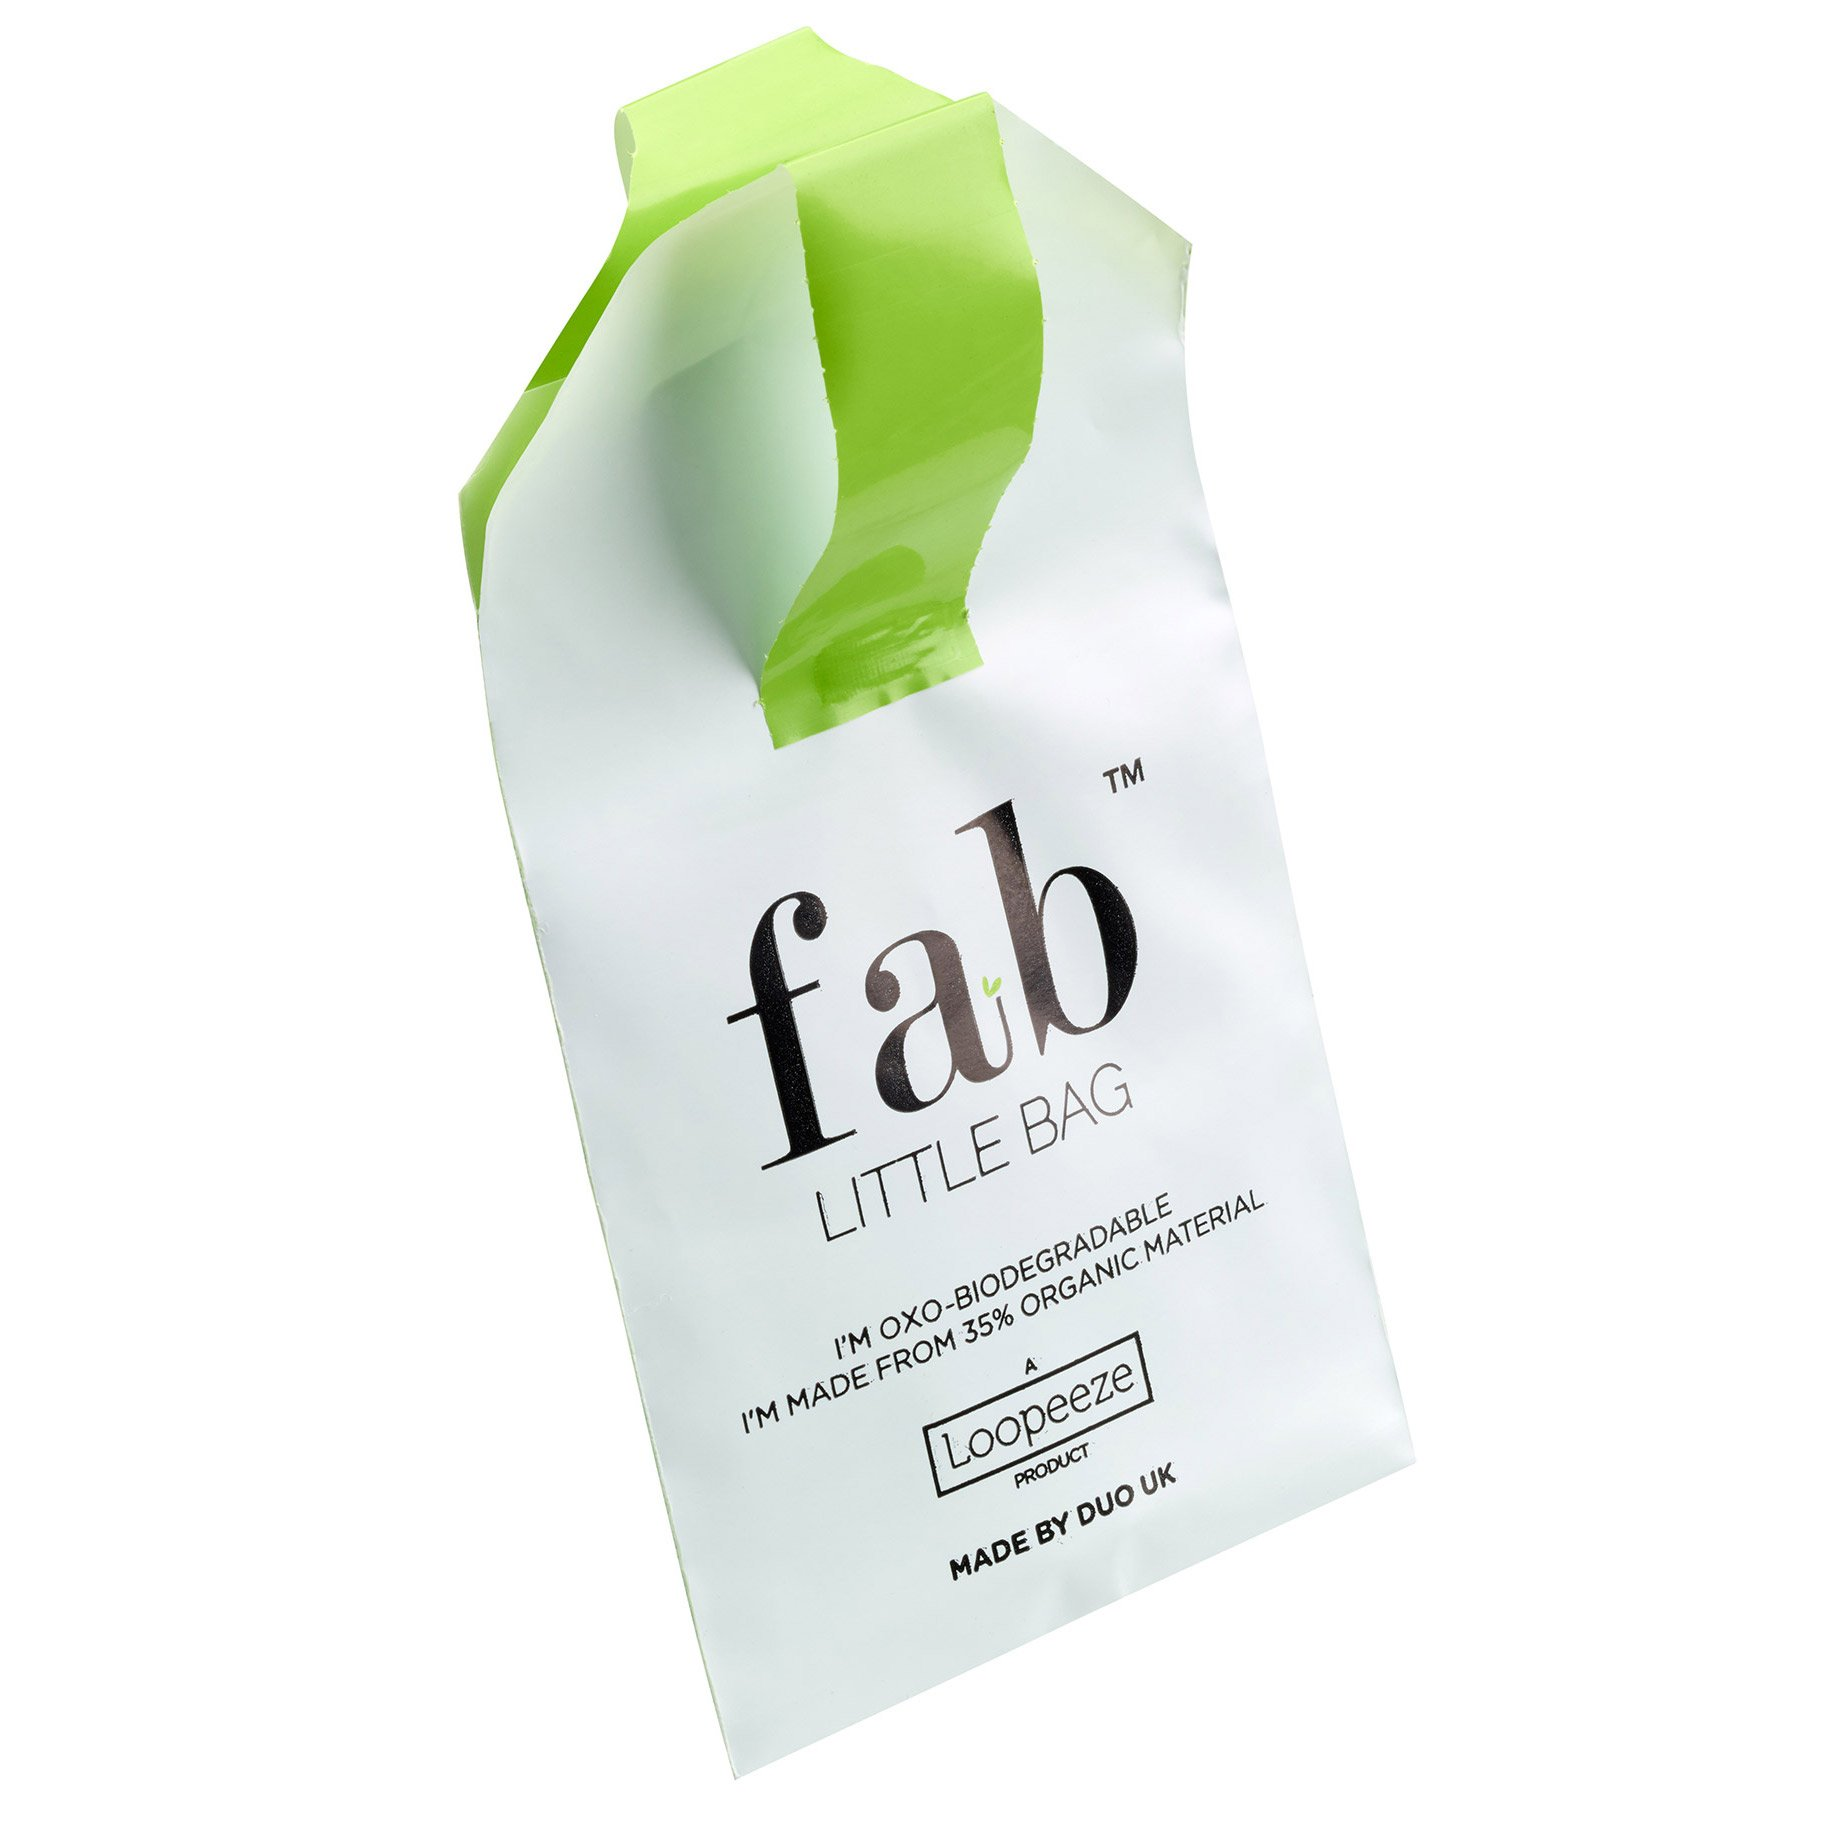 Fab Little Bag Sealable One Handed Tampon Disposal Bag 26g (Pack of 12) by FabLittleBag (Image #2)